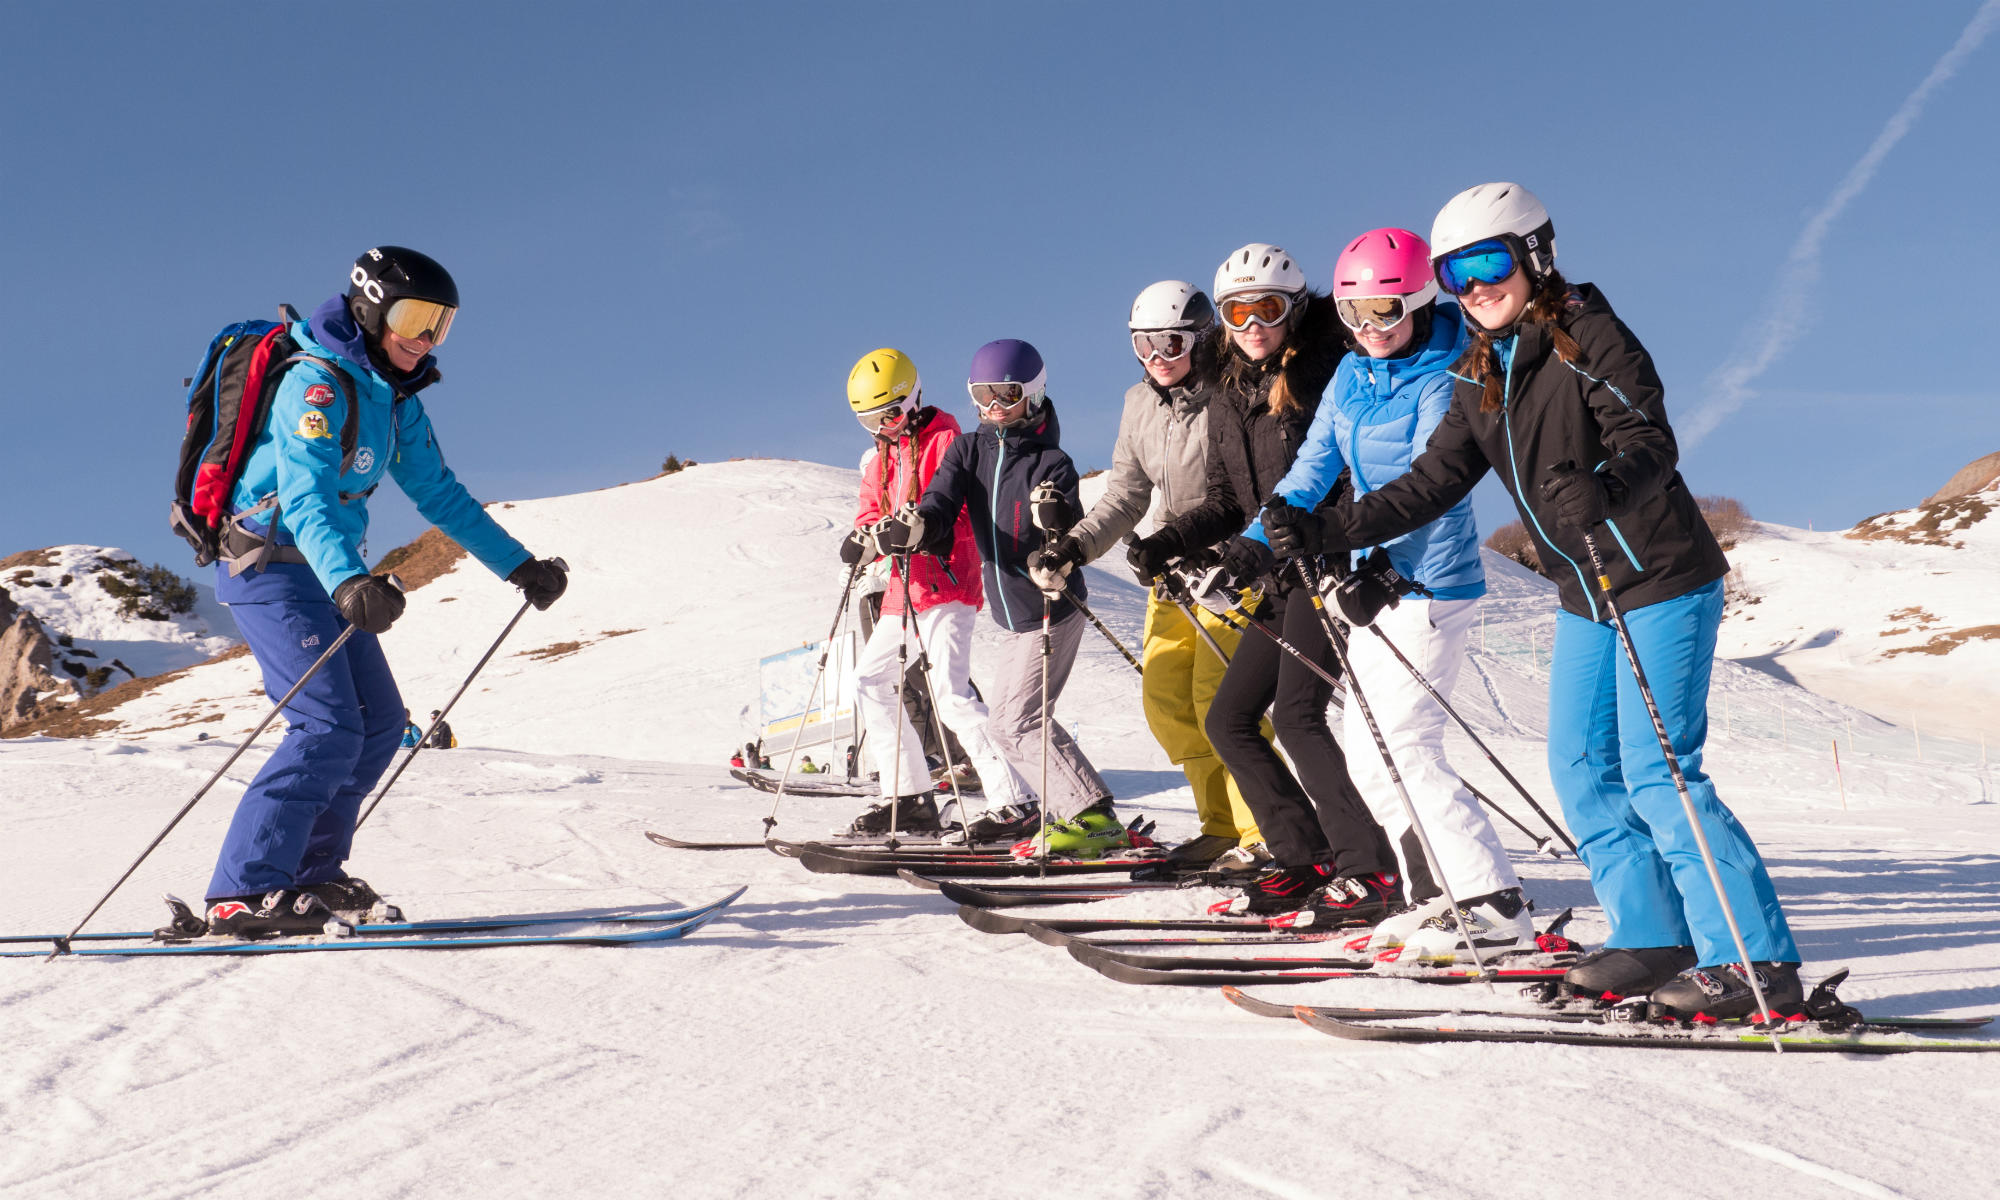 A group of teenagers on a sunny pist while skiing.